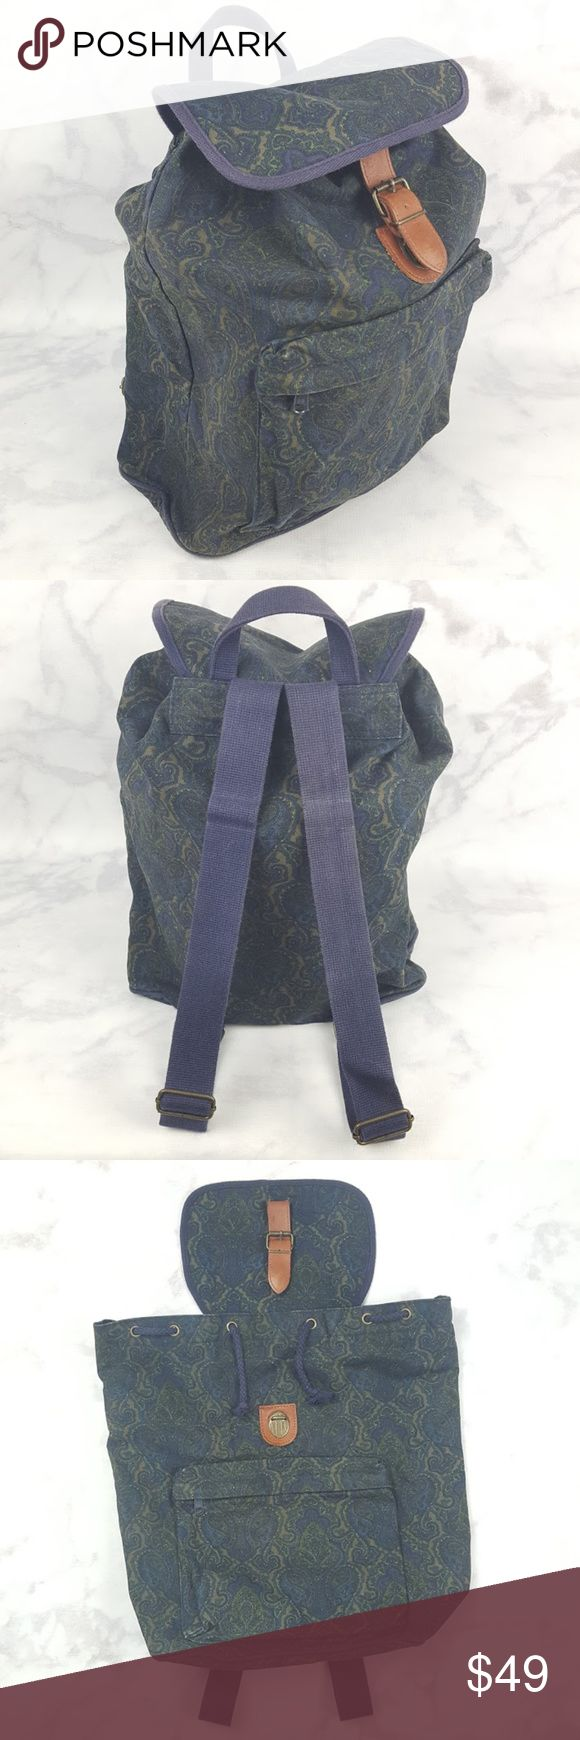 Gap Vintage 90's Navy Blue Paisley Print Backpack Gap Vintage 90's Blue & Green Paisley Print w/ Leather Strap Backpack. Navy blue & olive green paisley print. Light brown leather strap. Brass eyelets & and buckle fixtures. Navy blue cinch cord, straps, & zipper. Olive green inside. Full size backpack, zippered front pocket, & adjustable straps. Top leather strap has a few loose stitches. Excellent Used Condition. One Size. No Trades! GAP Bags Backpacks